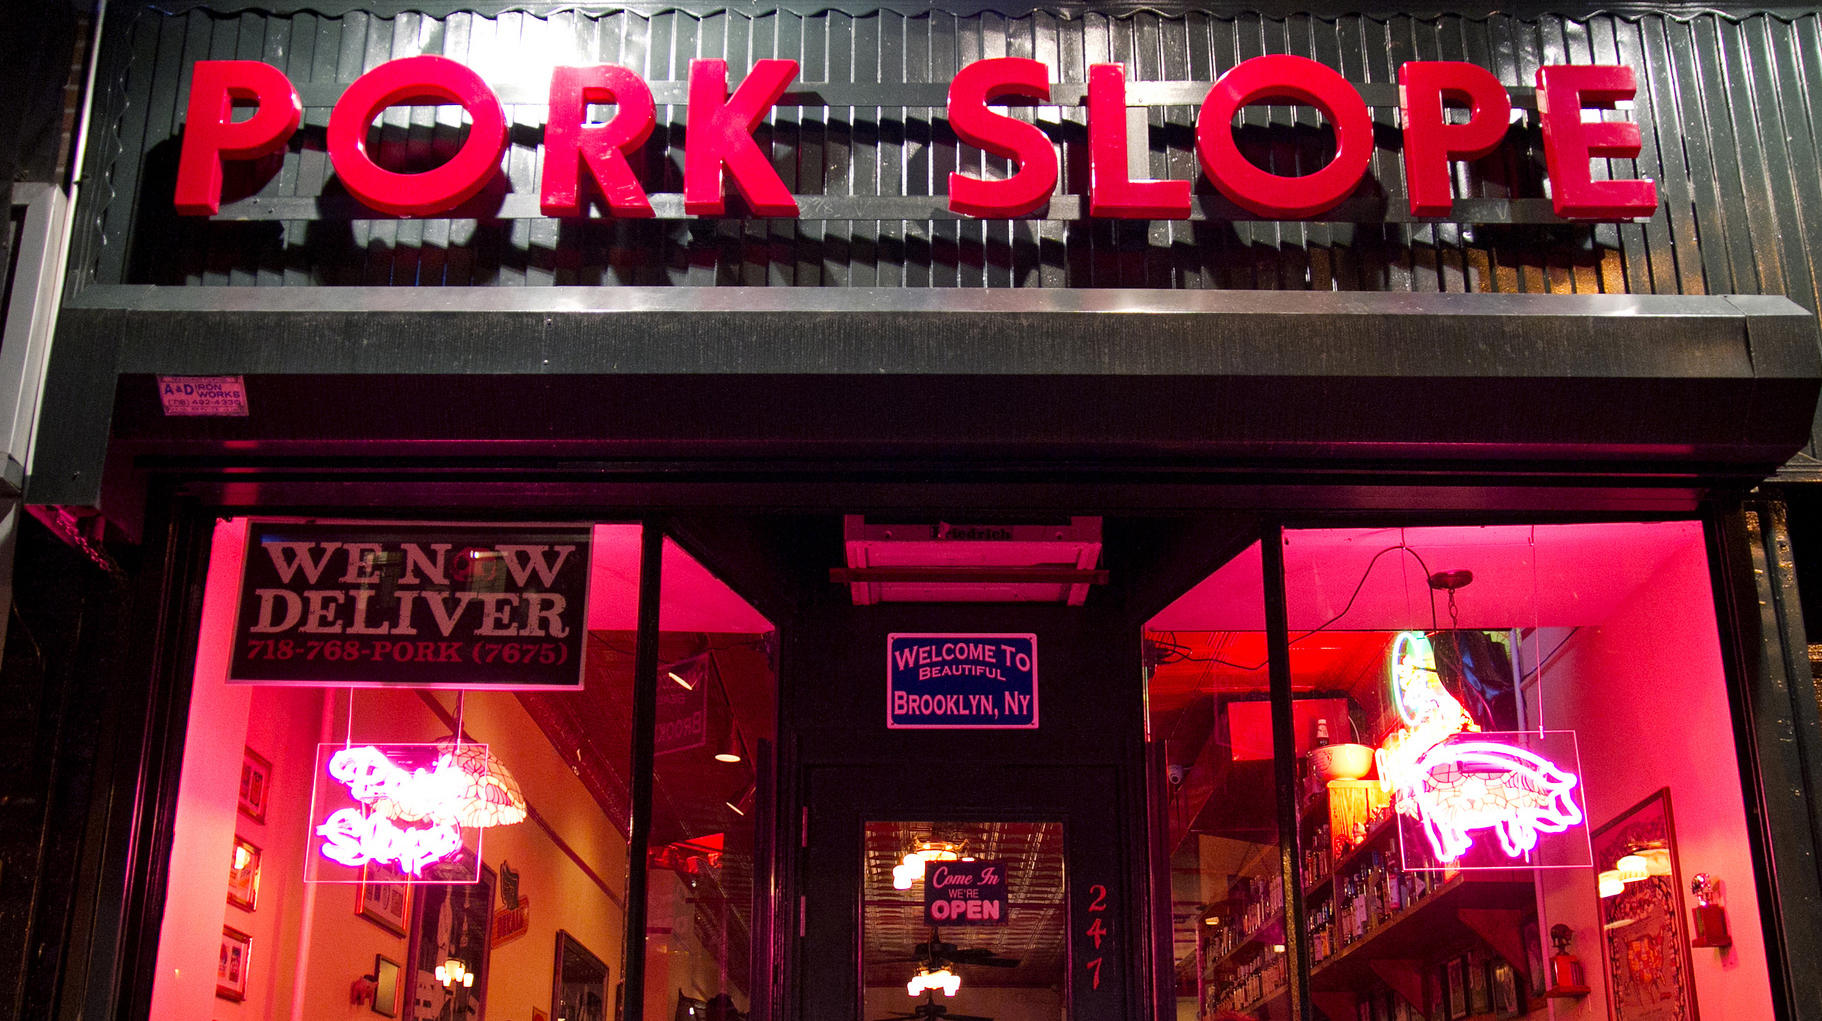 The 20 best punny business names in NYC